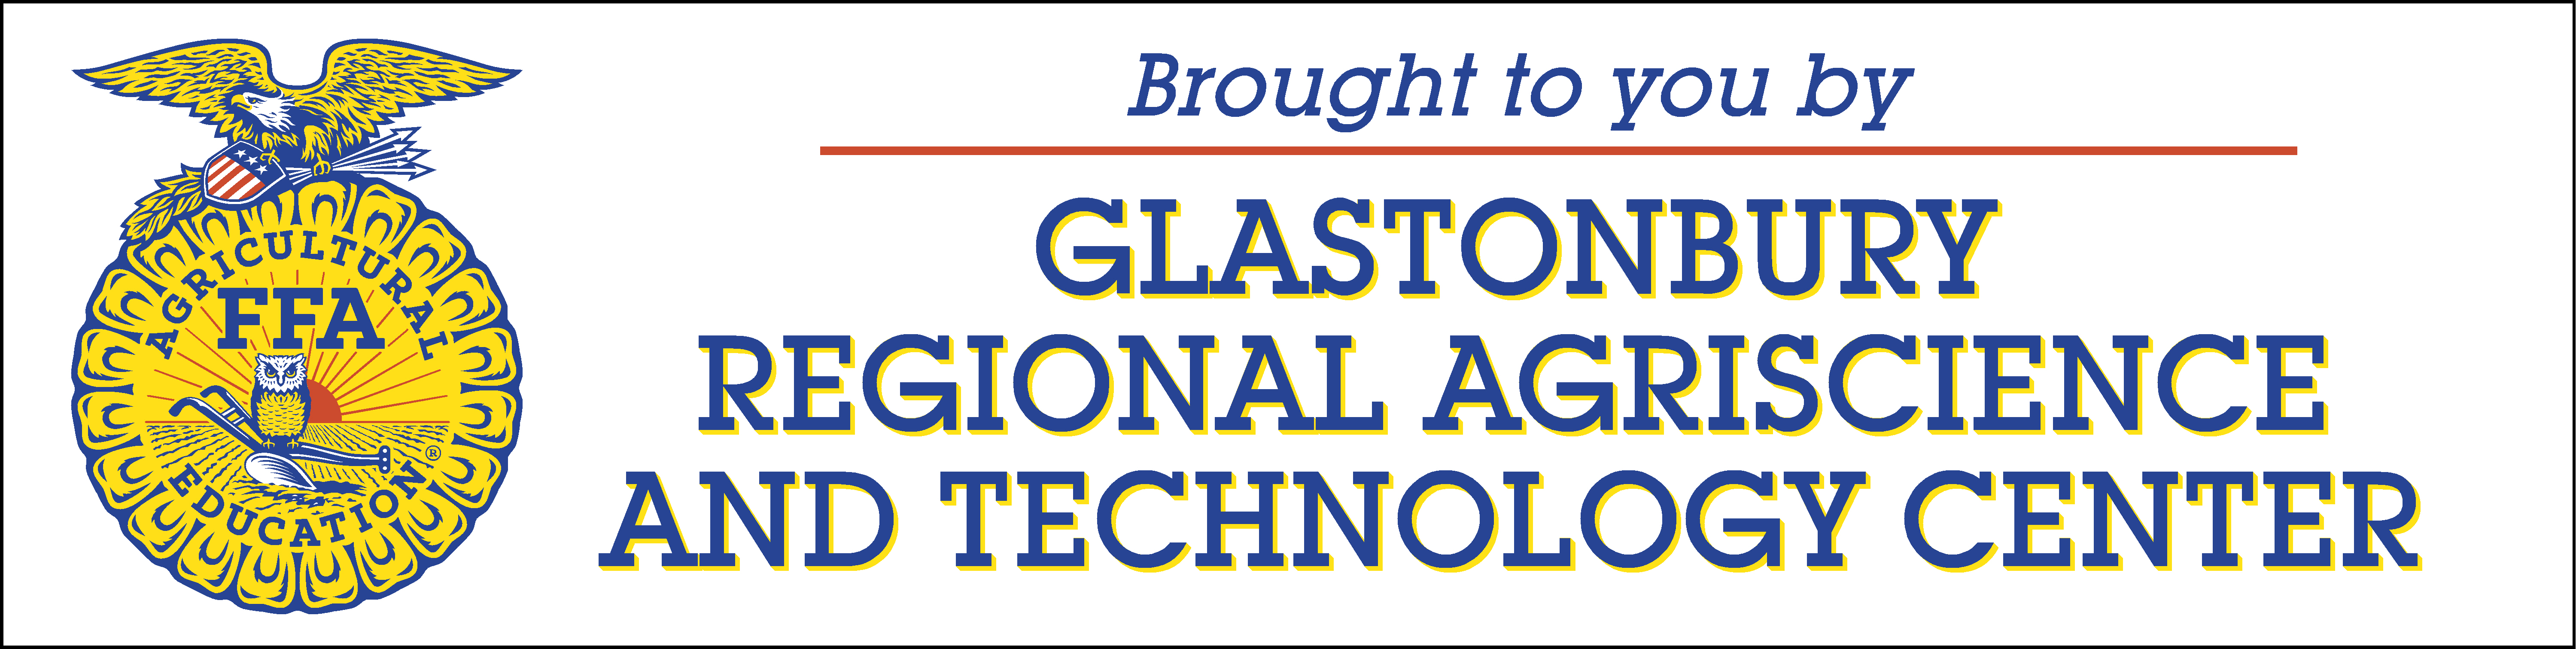 brought to you by glastonbury regional agriscience and technology center